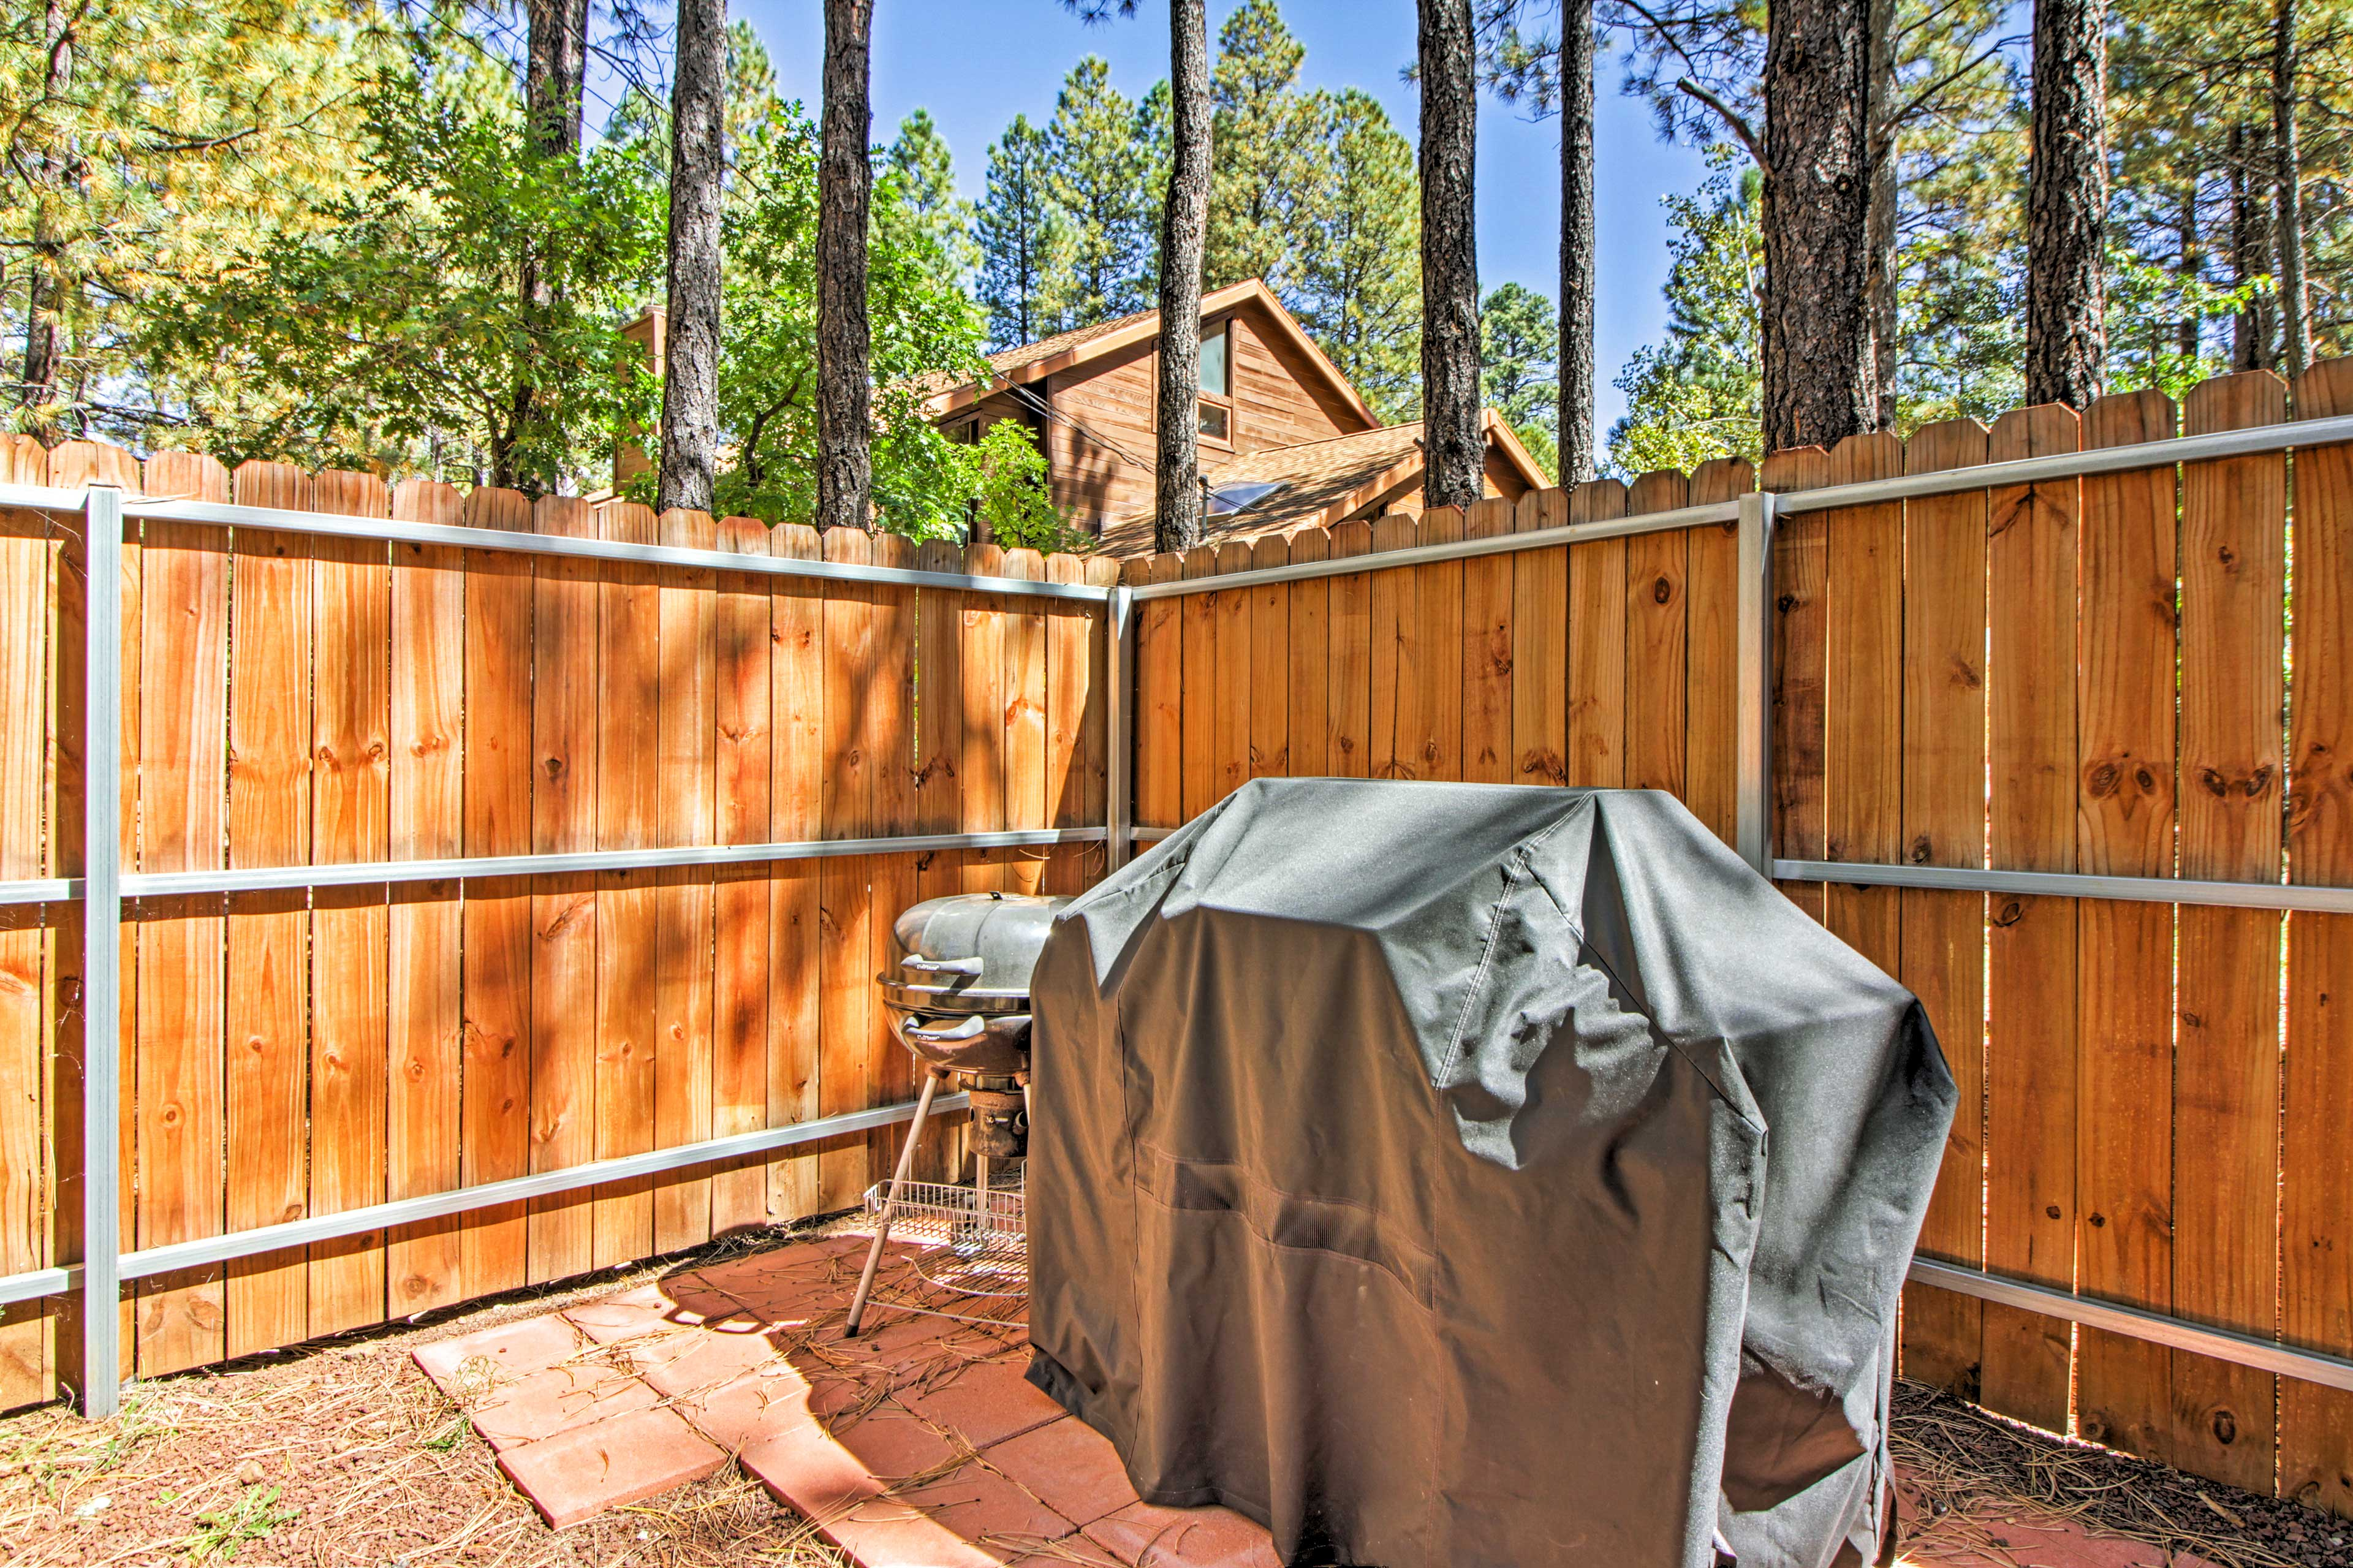 There's both a gas grill and a charcoal grill available for family barbecues.